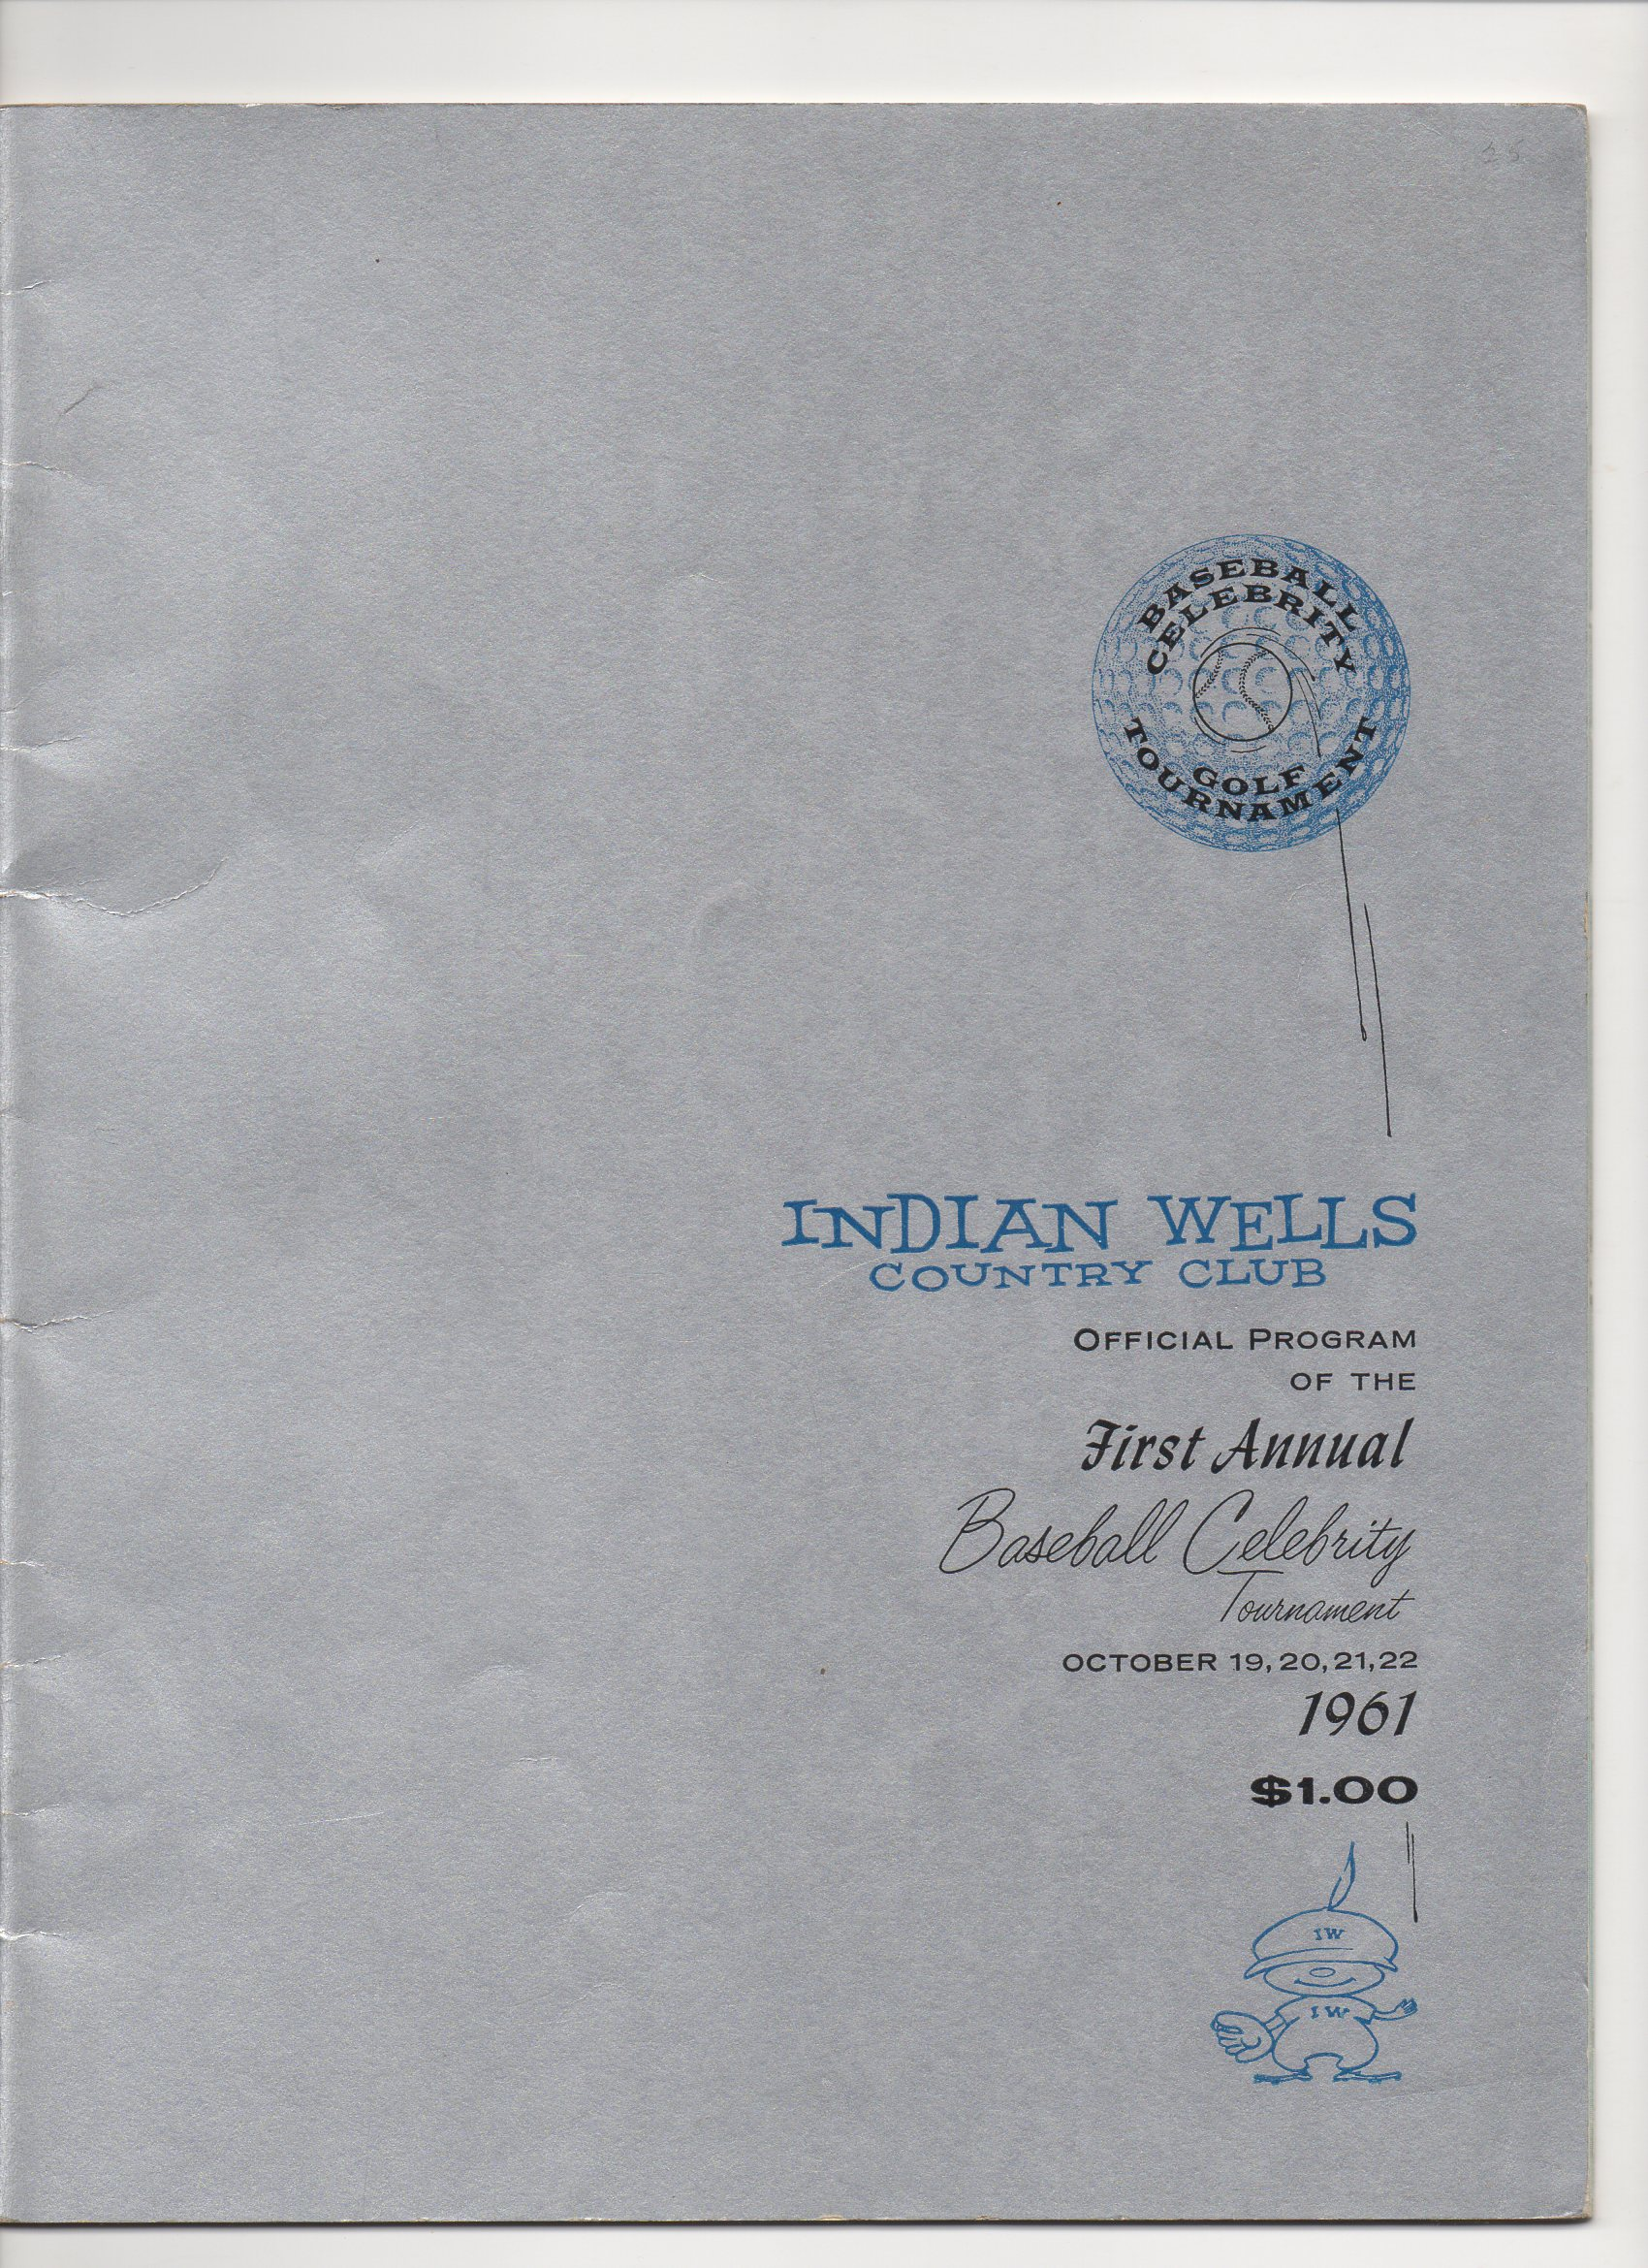 1961 indian wells first annual baseball celebrity tournament